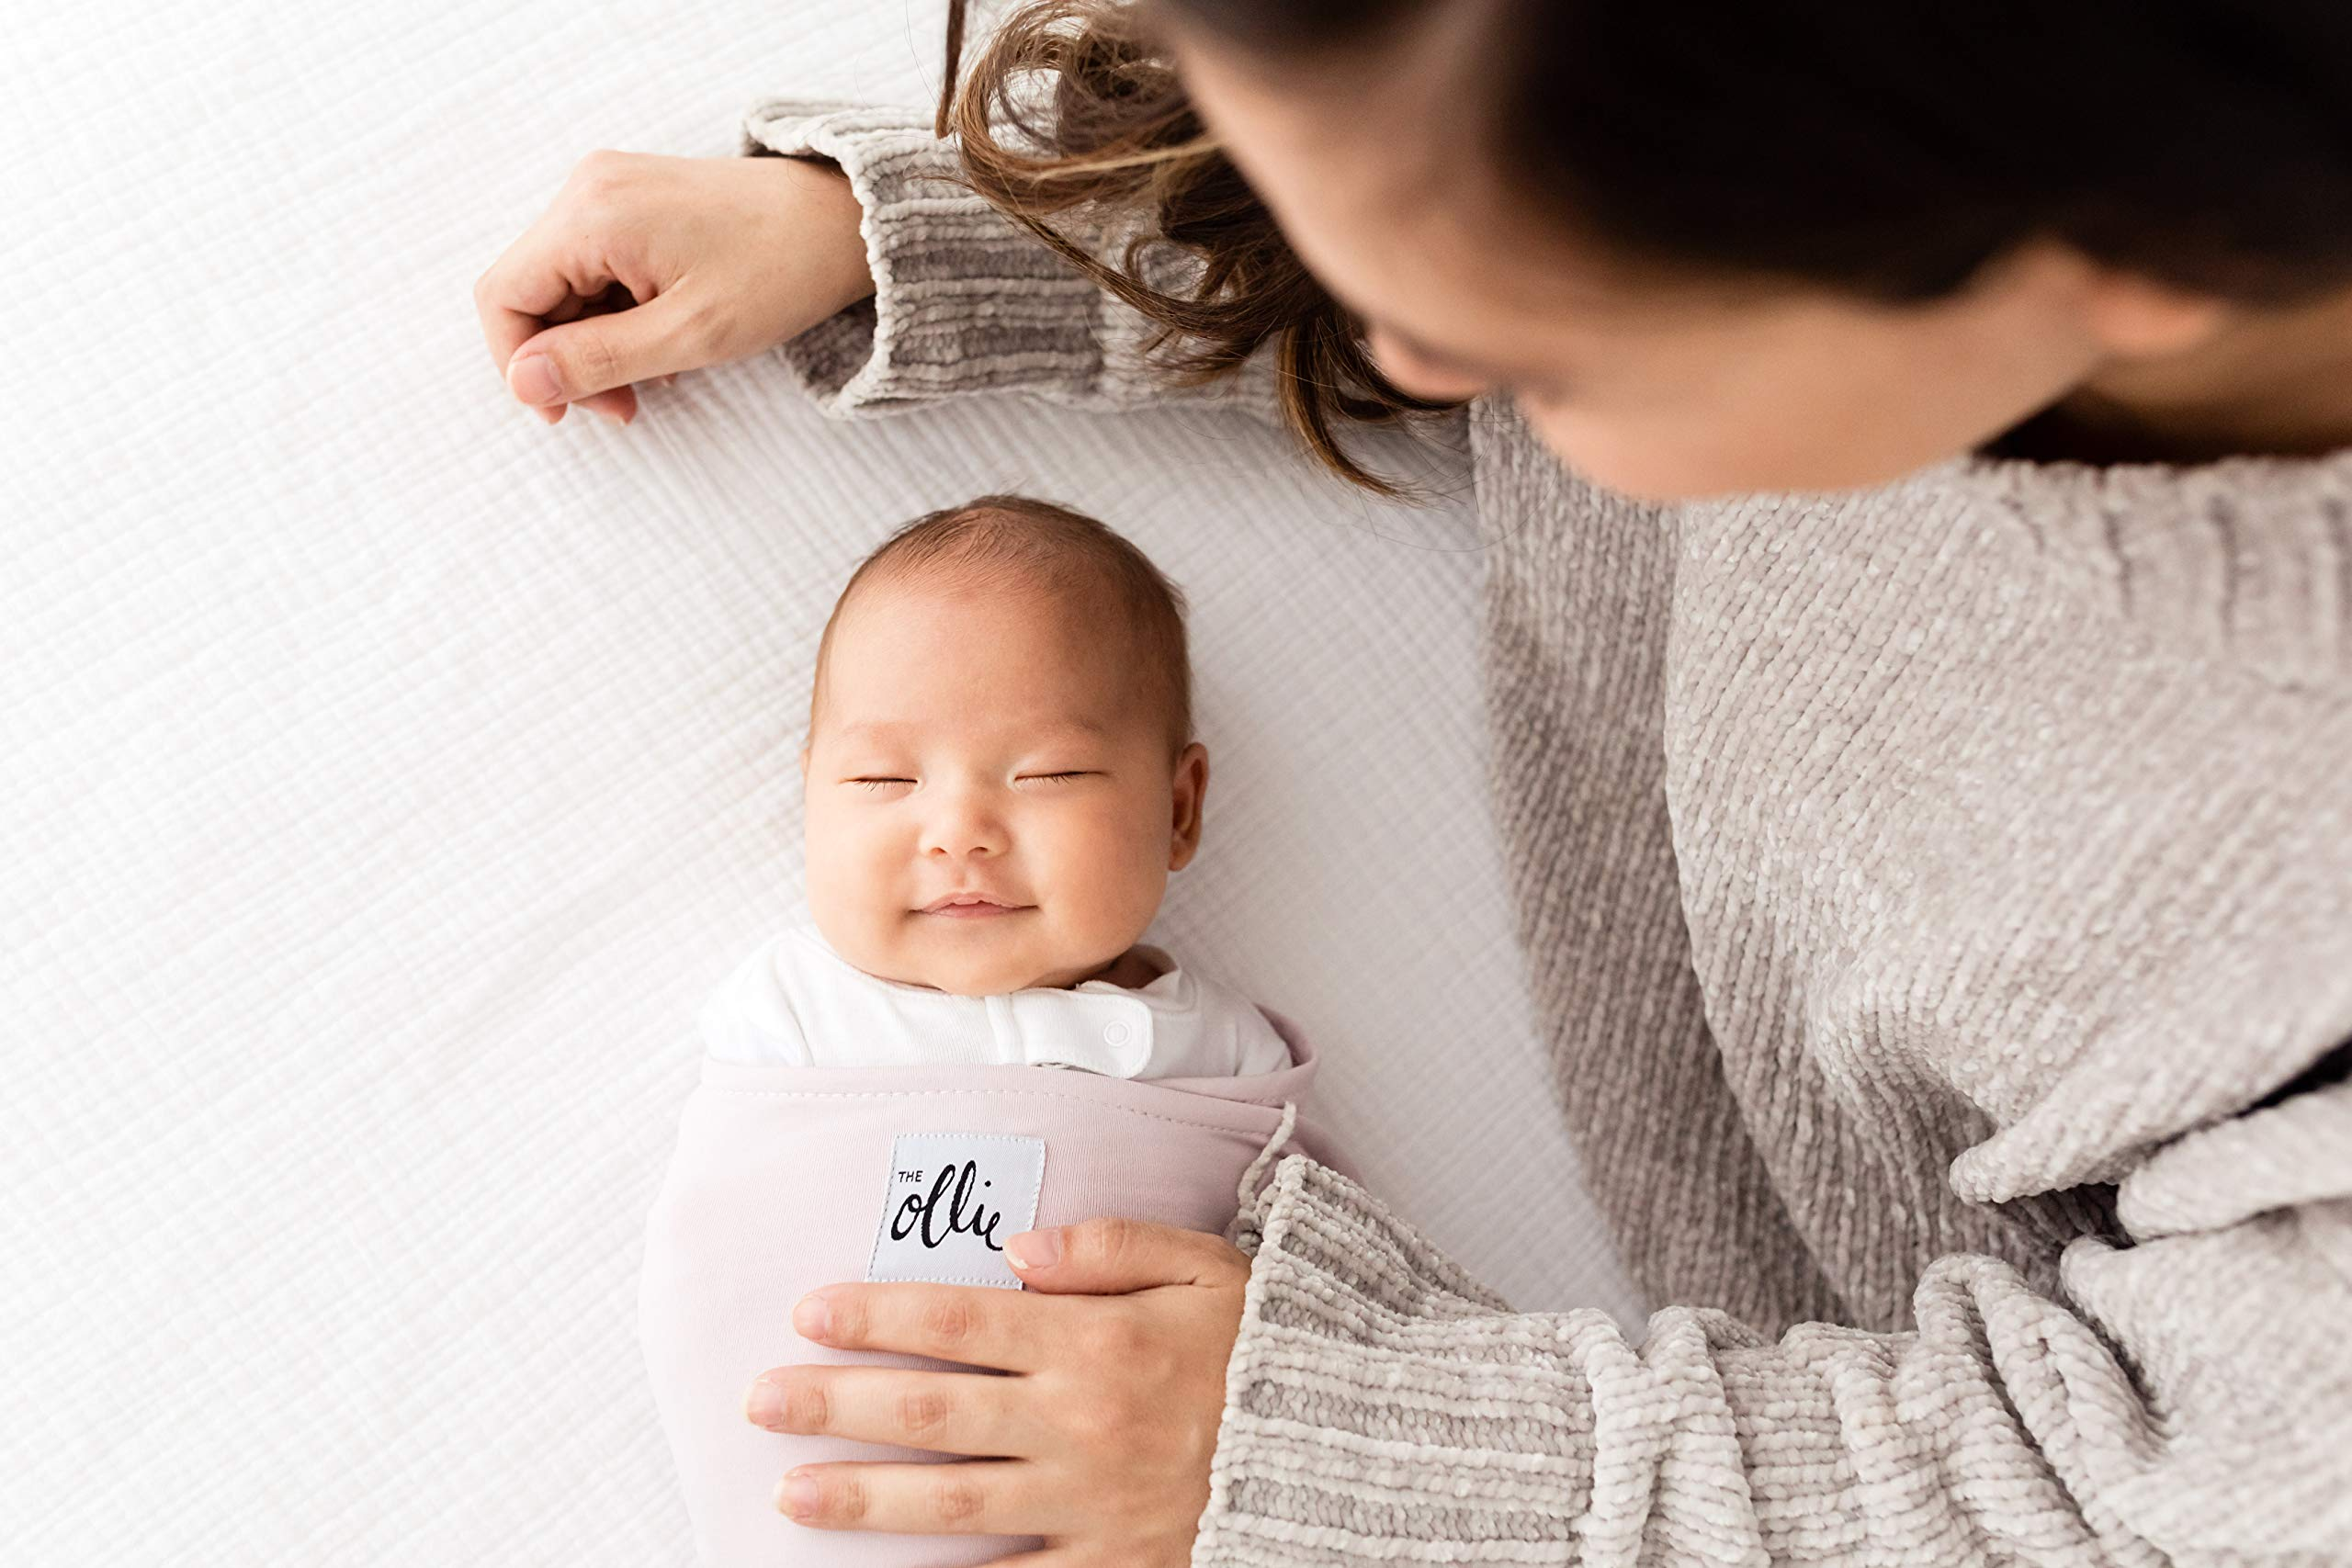 The Ollie Swaddle (Lavender) - Helps to Reduce The Moro (Startle) Reflex - Made from a Custom Designed Moisture-Wicking Material-No overheating-Size Adjustable for All Months of Babies by The Ollie (Image #4)